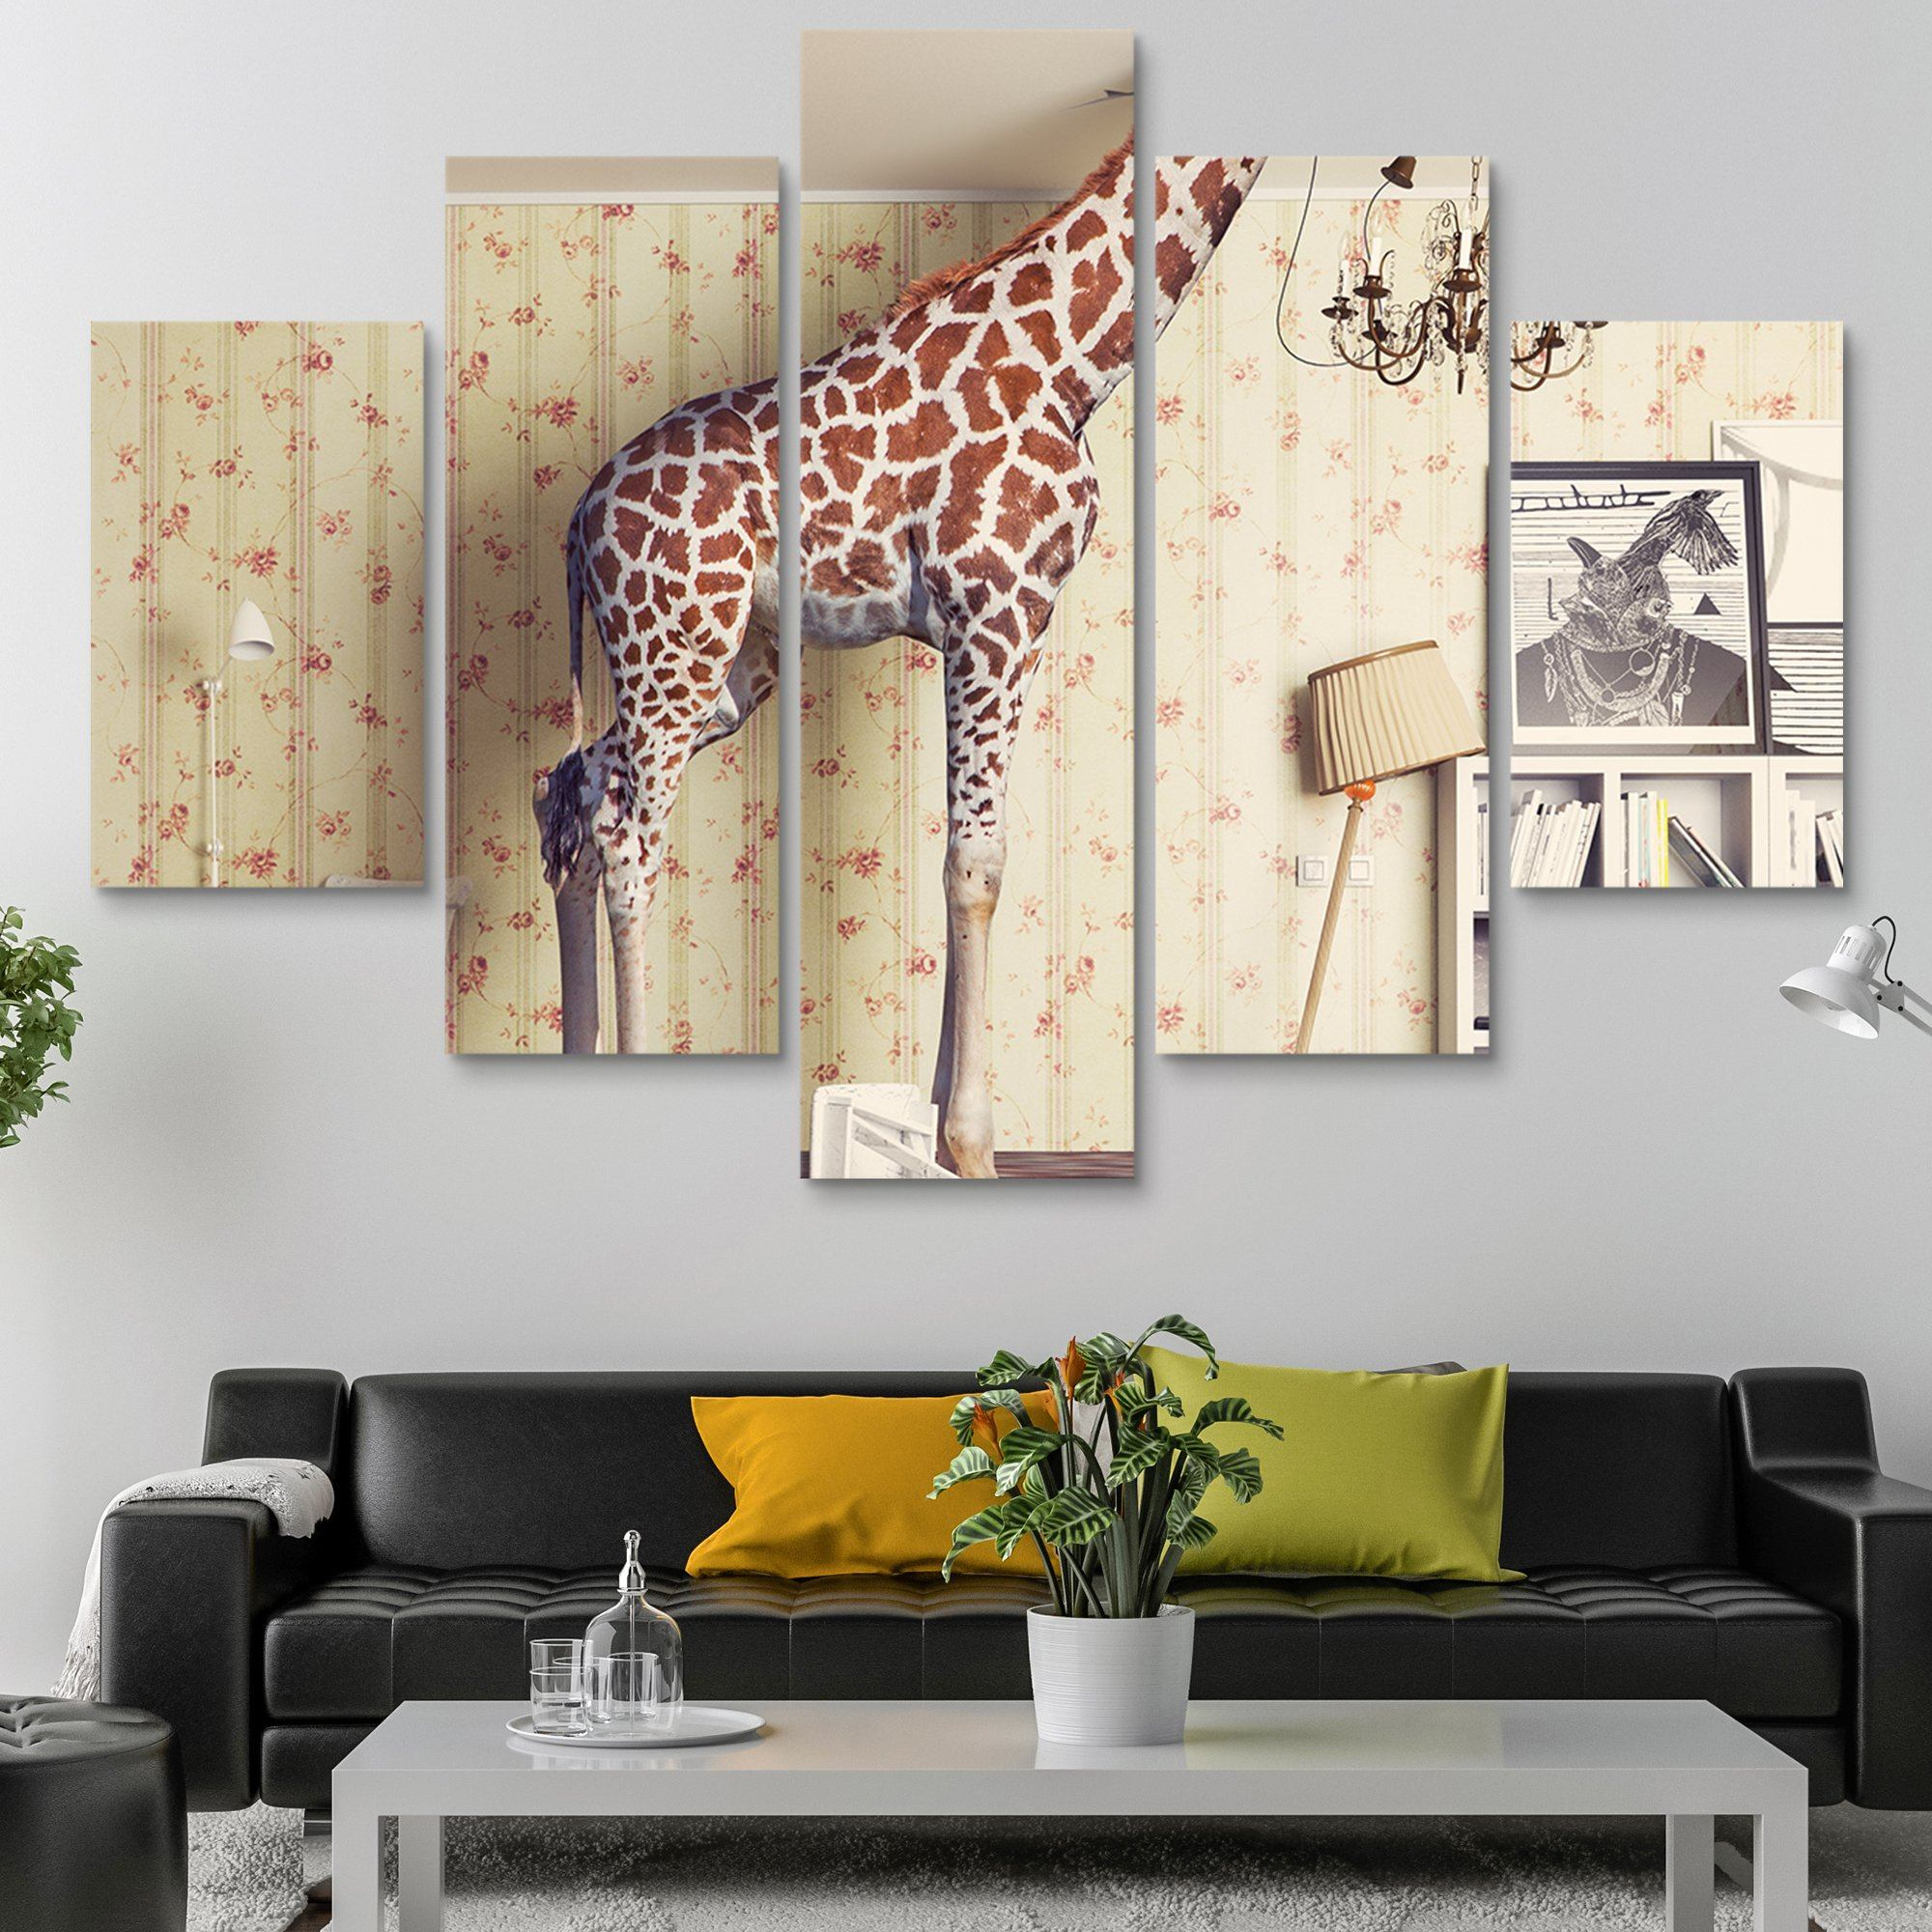 5 piece Giraffe Breaks the Ceiling wall art